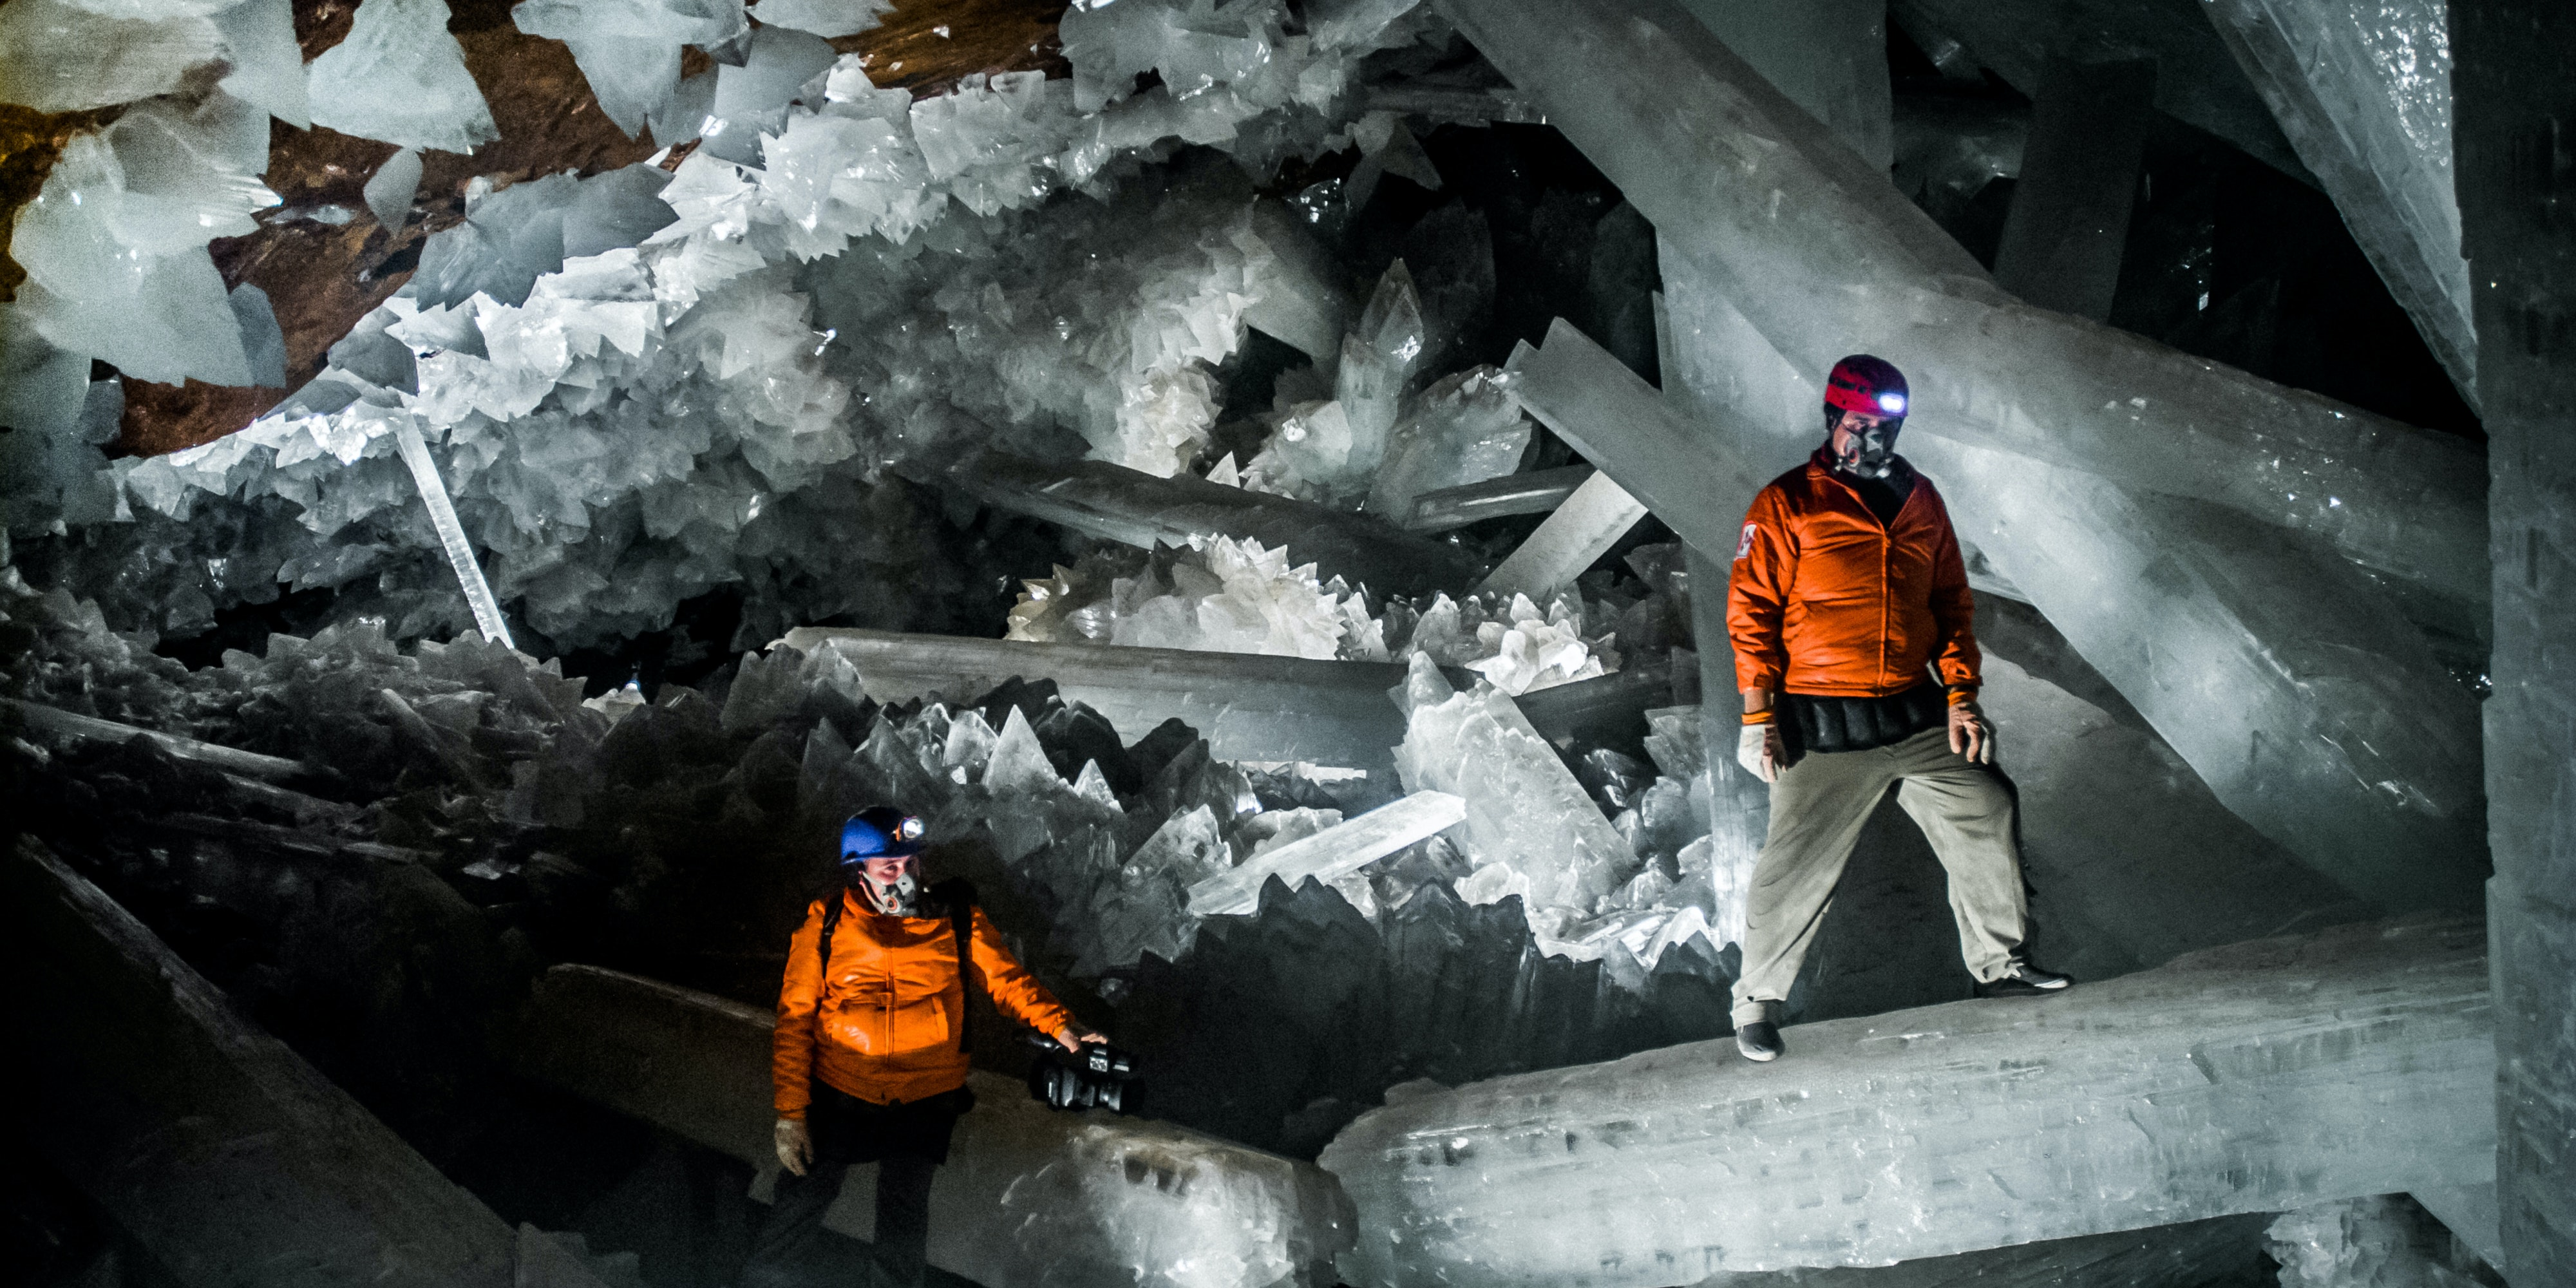 Strange Microbes Trapped in Crystals Provide Clues About Alien Life